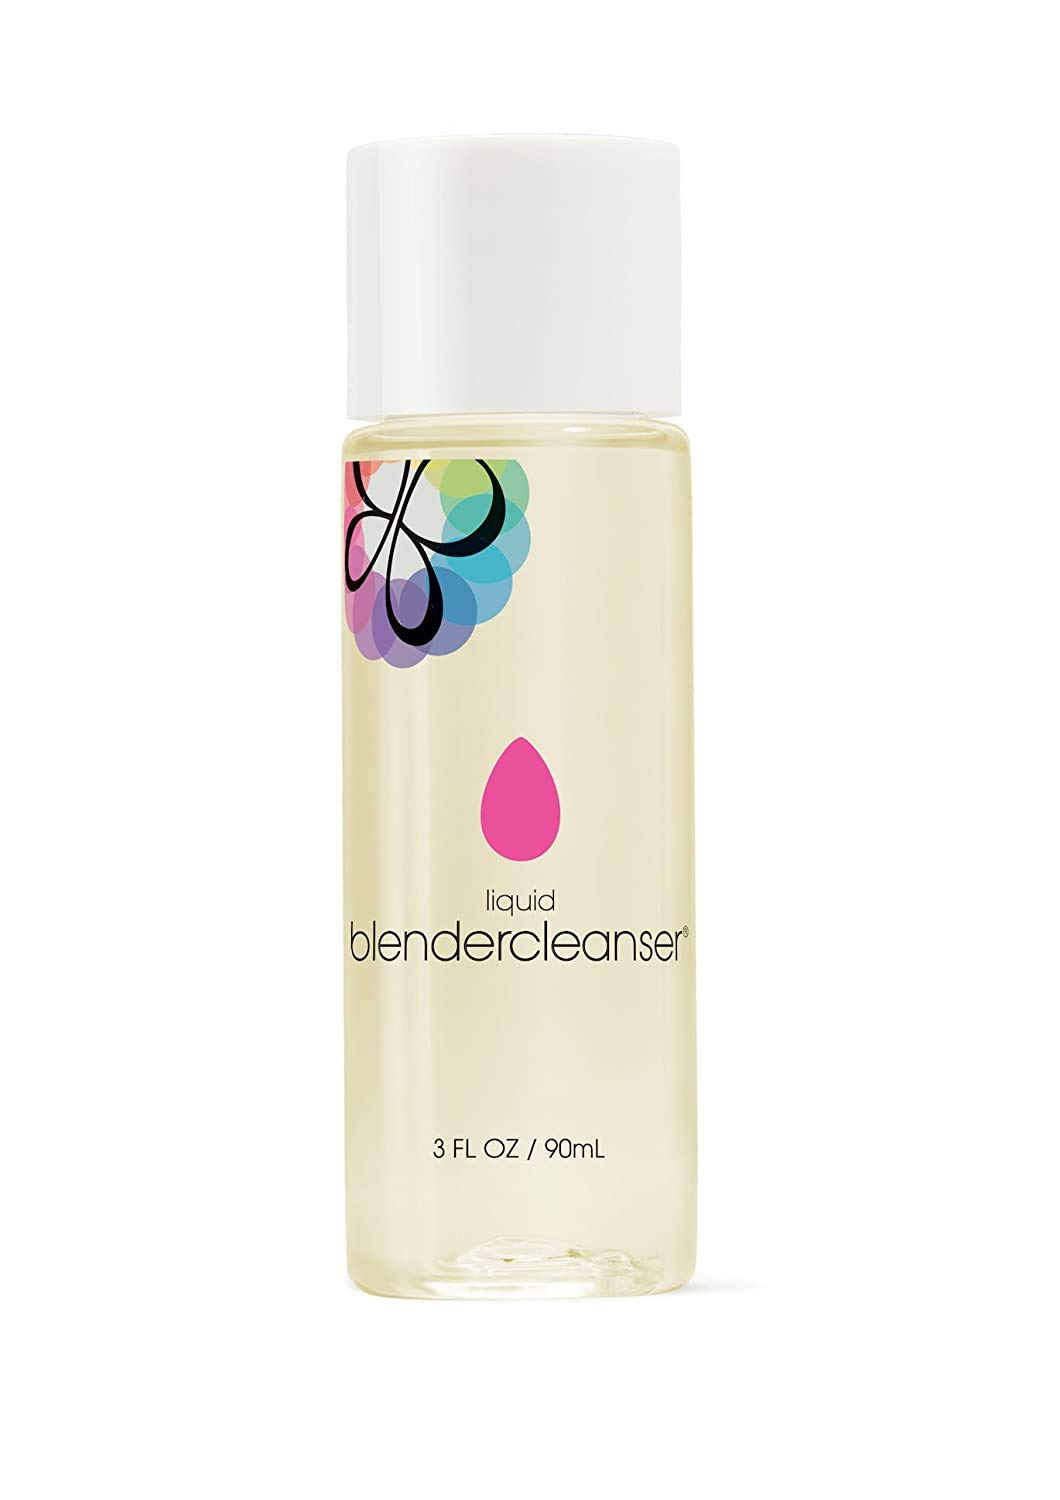 BEAUTYBLENDER Liquid BLENDERCLEANSER for Cleaning Makeup Sponges, Brushes & Applicators, 3 oz. Vegan, Cruelty Free and Made in the USA: Beauty